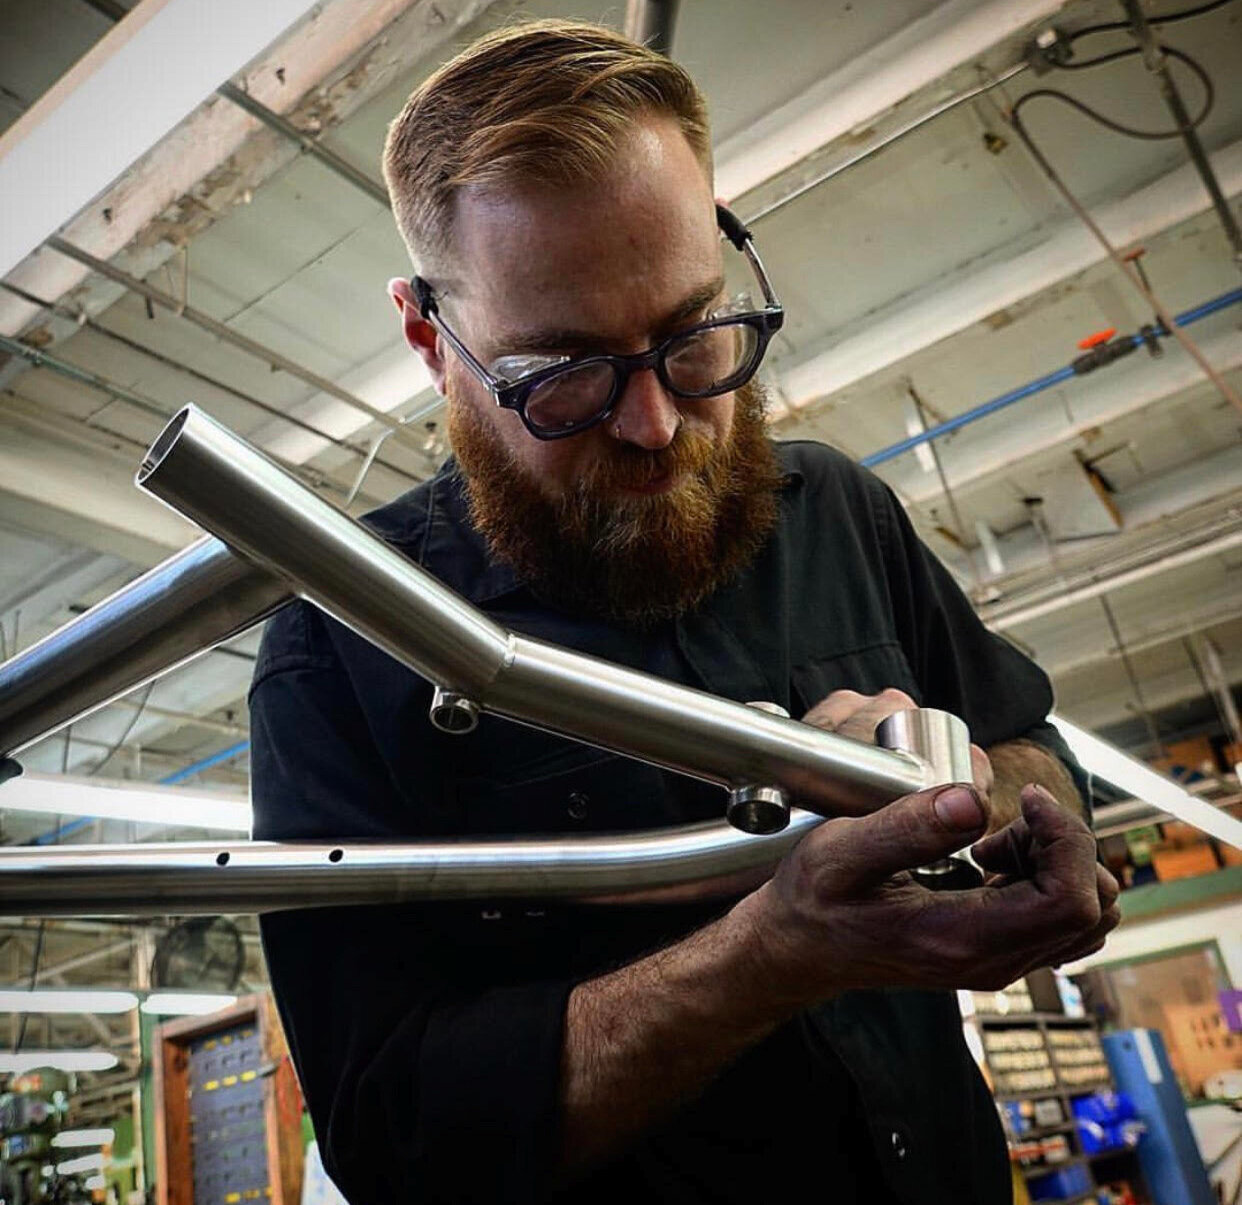 John T inspects a frame. The professional bike builders at Seven Cycles pay attention to every detail and get each right. They set the bar high in the bike building world.